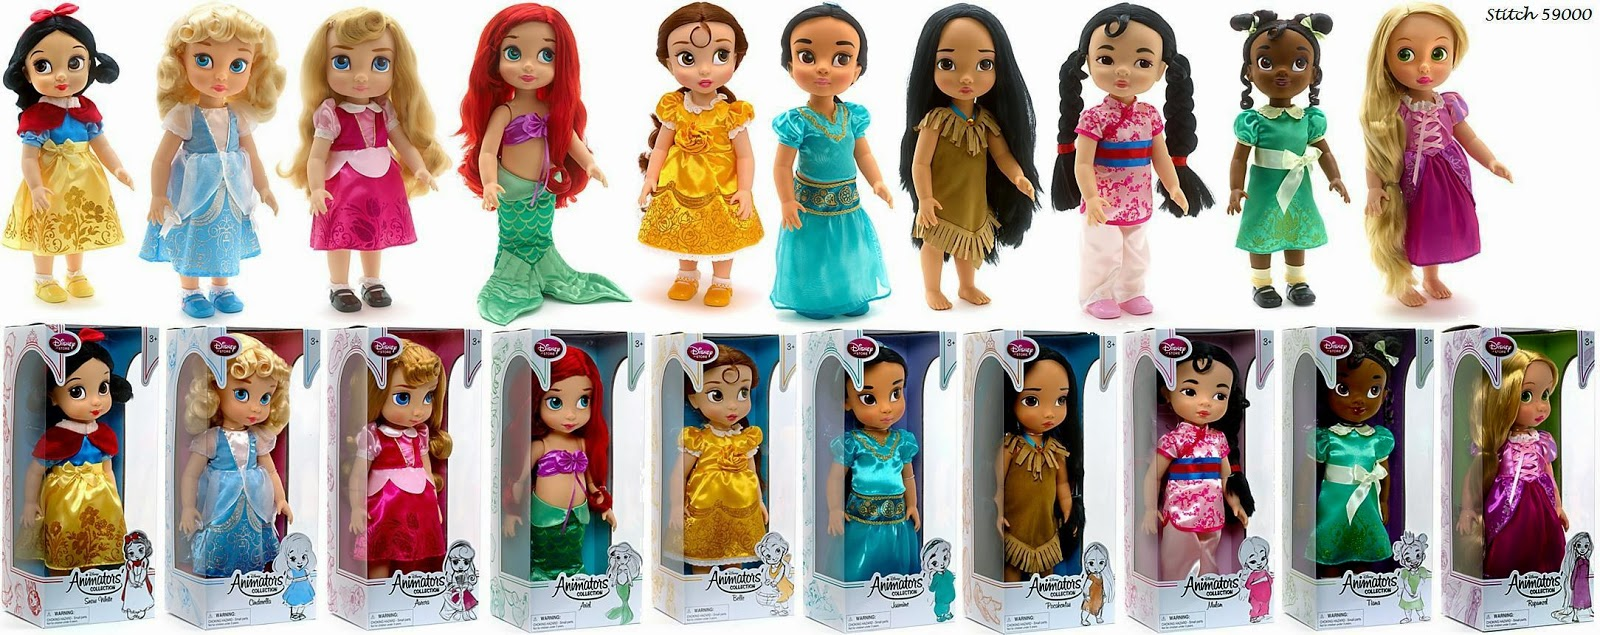 My Toys: Disney Animators' Collection Dolls